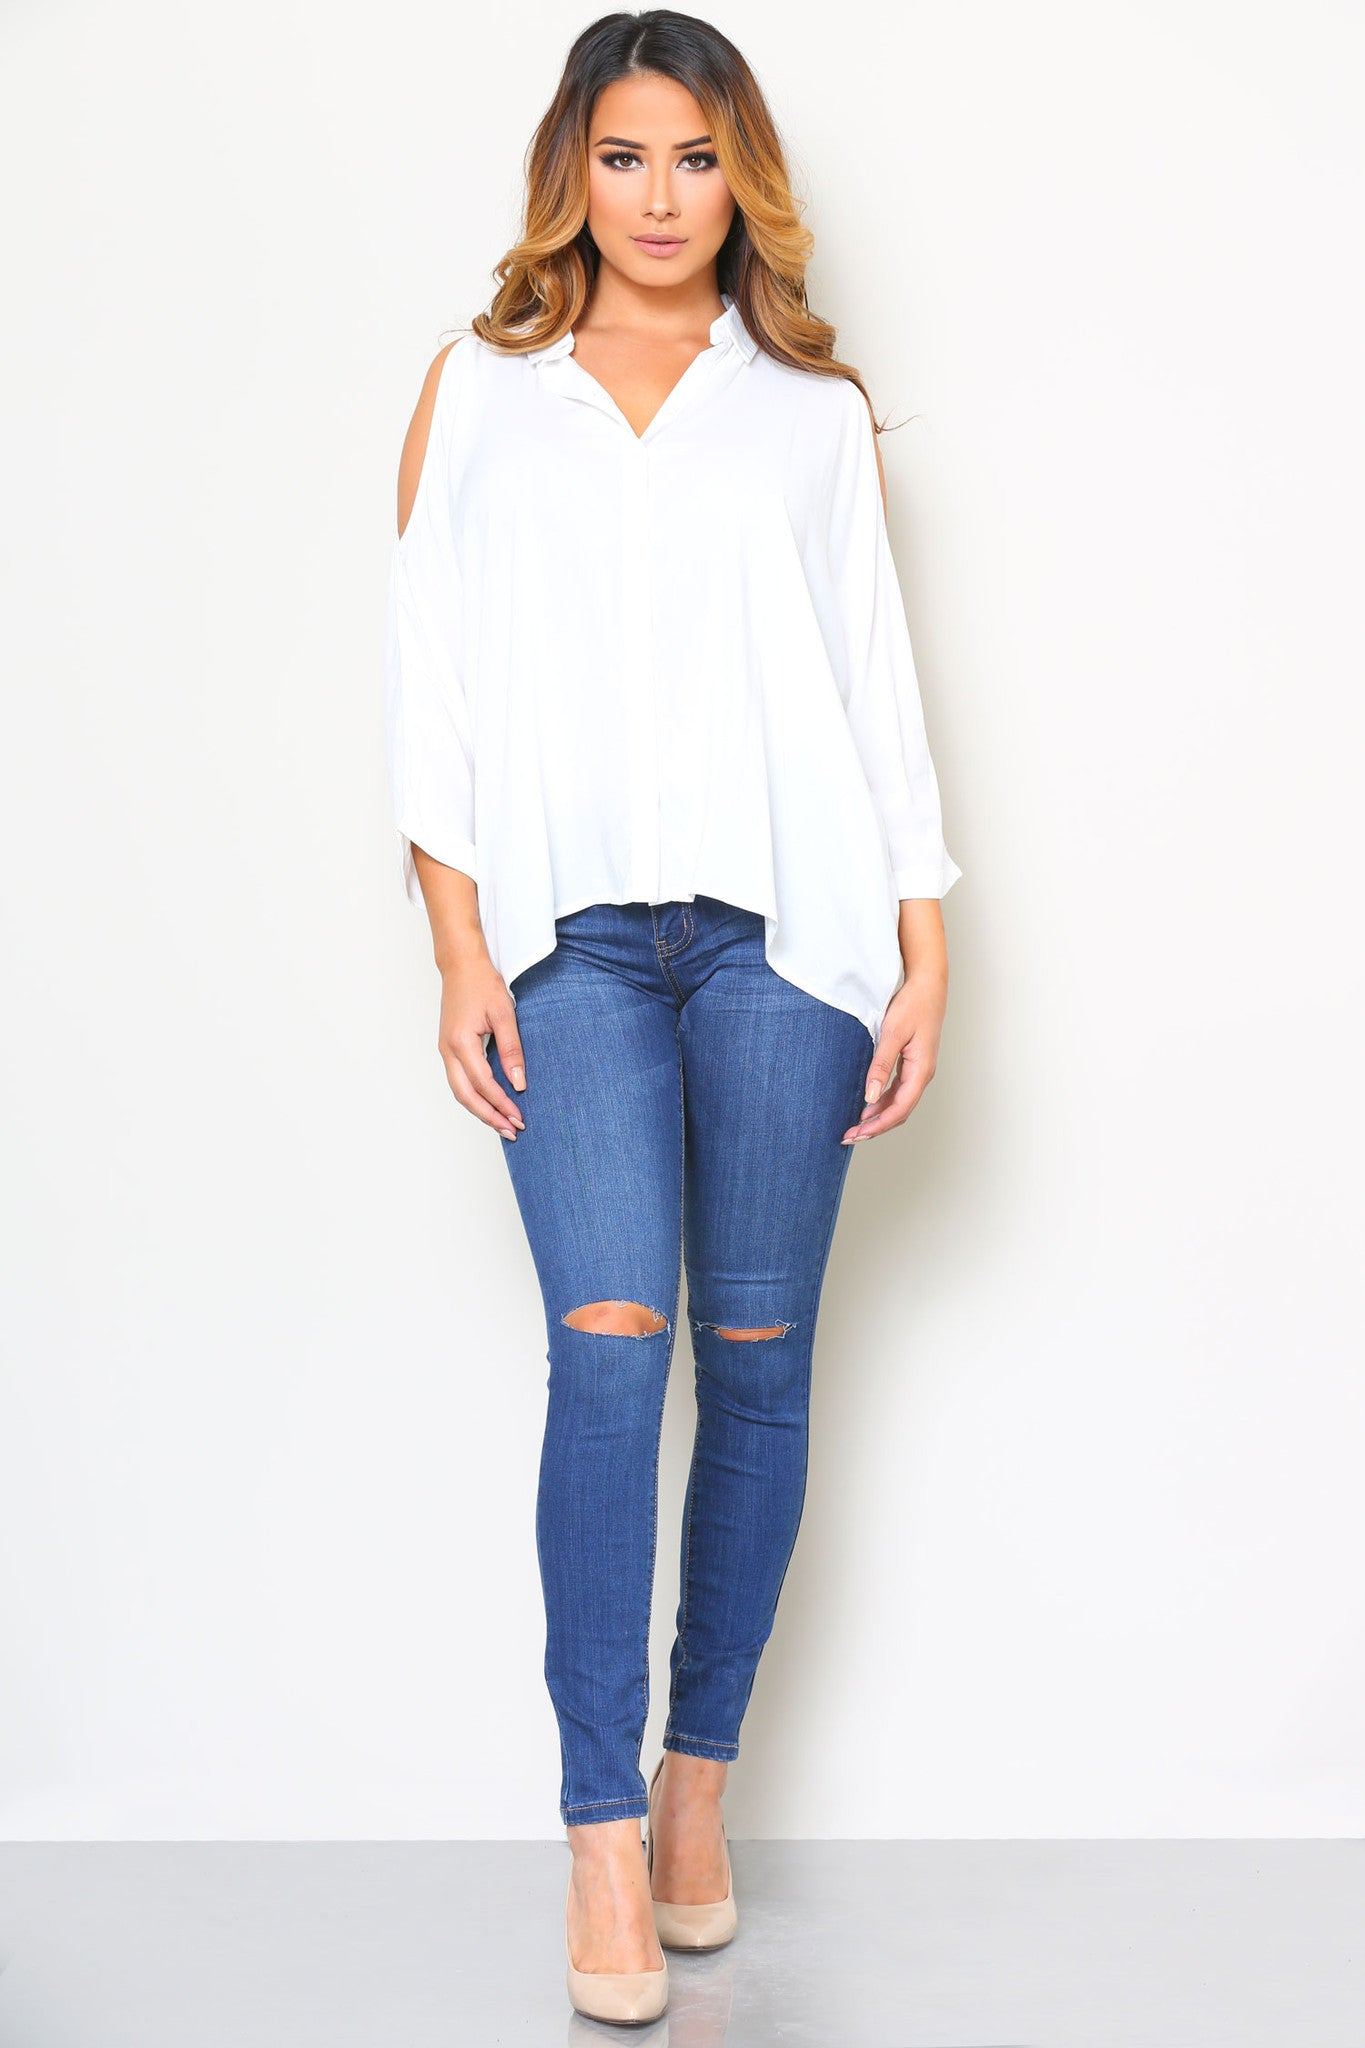 WILLOW BLOUSE - Glam Envy - 1